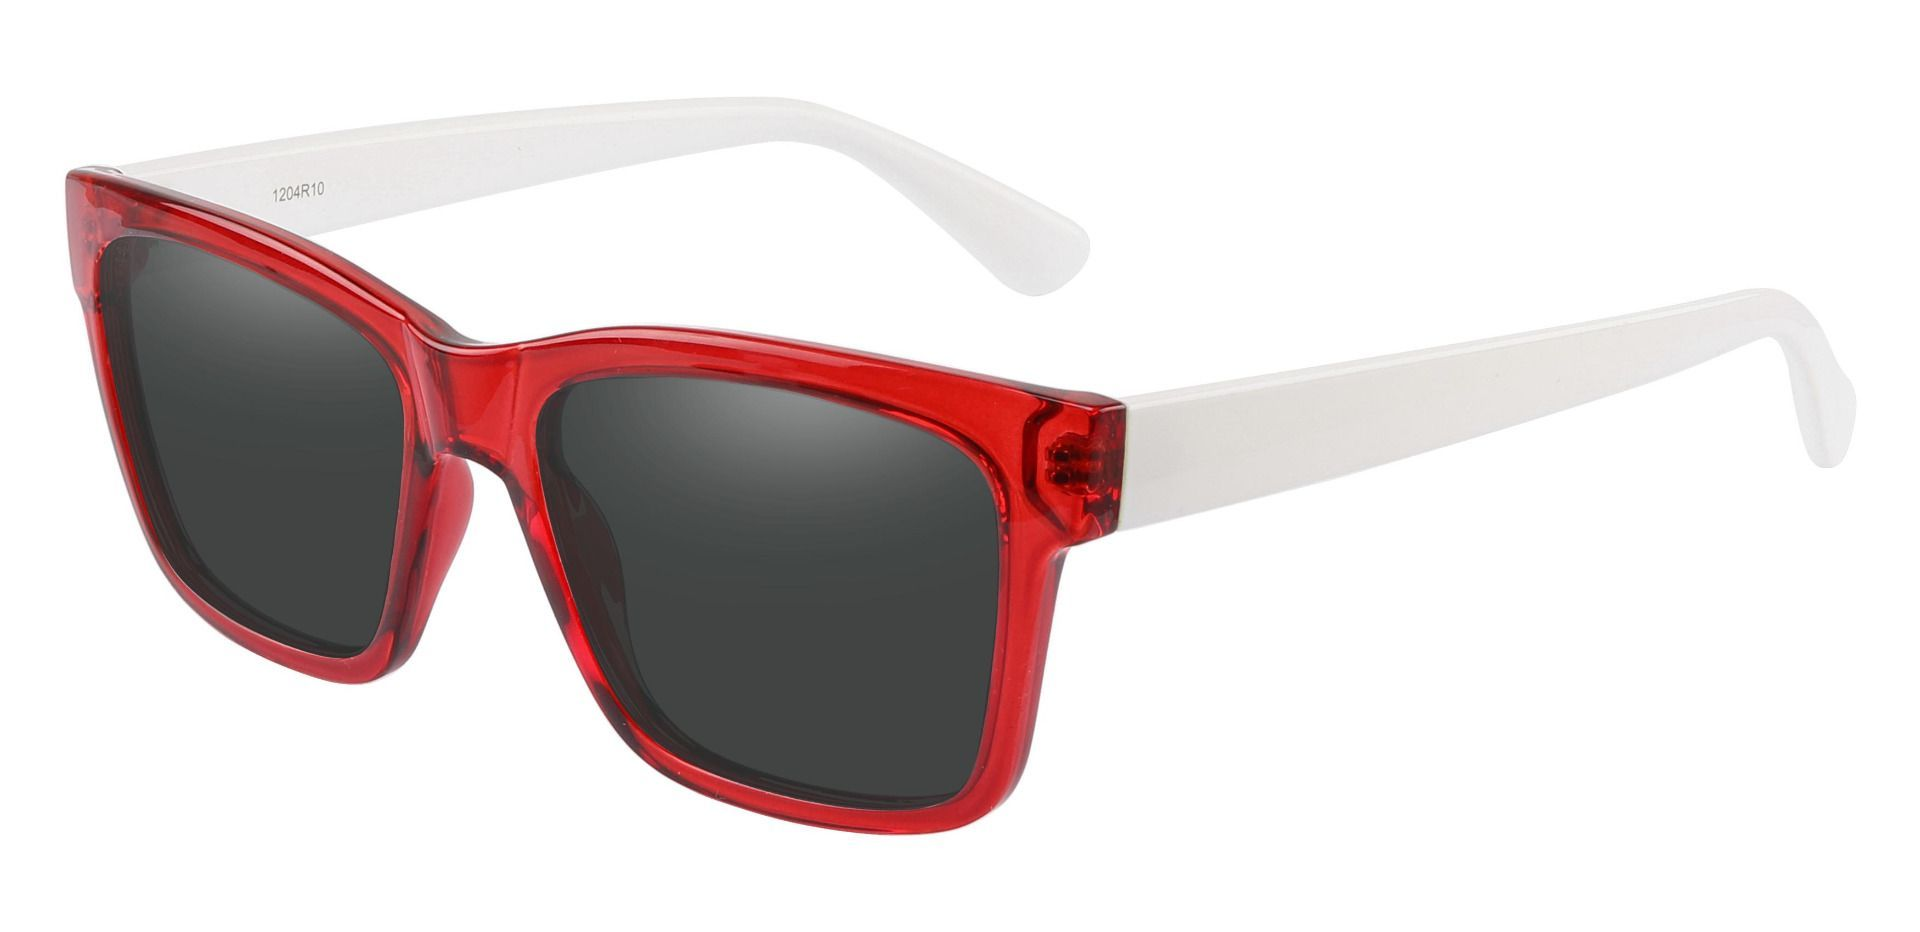 Brinley Square Reading Sunglasses - Red Frame With Gray Lenses